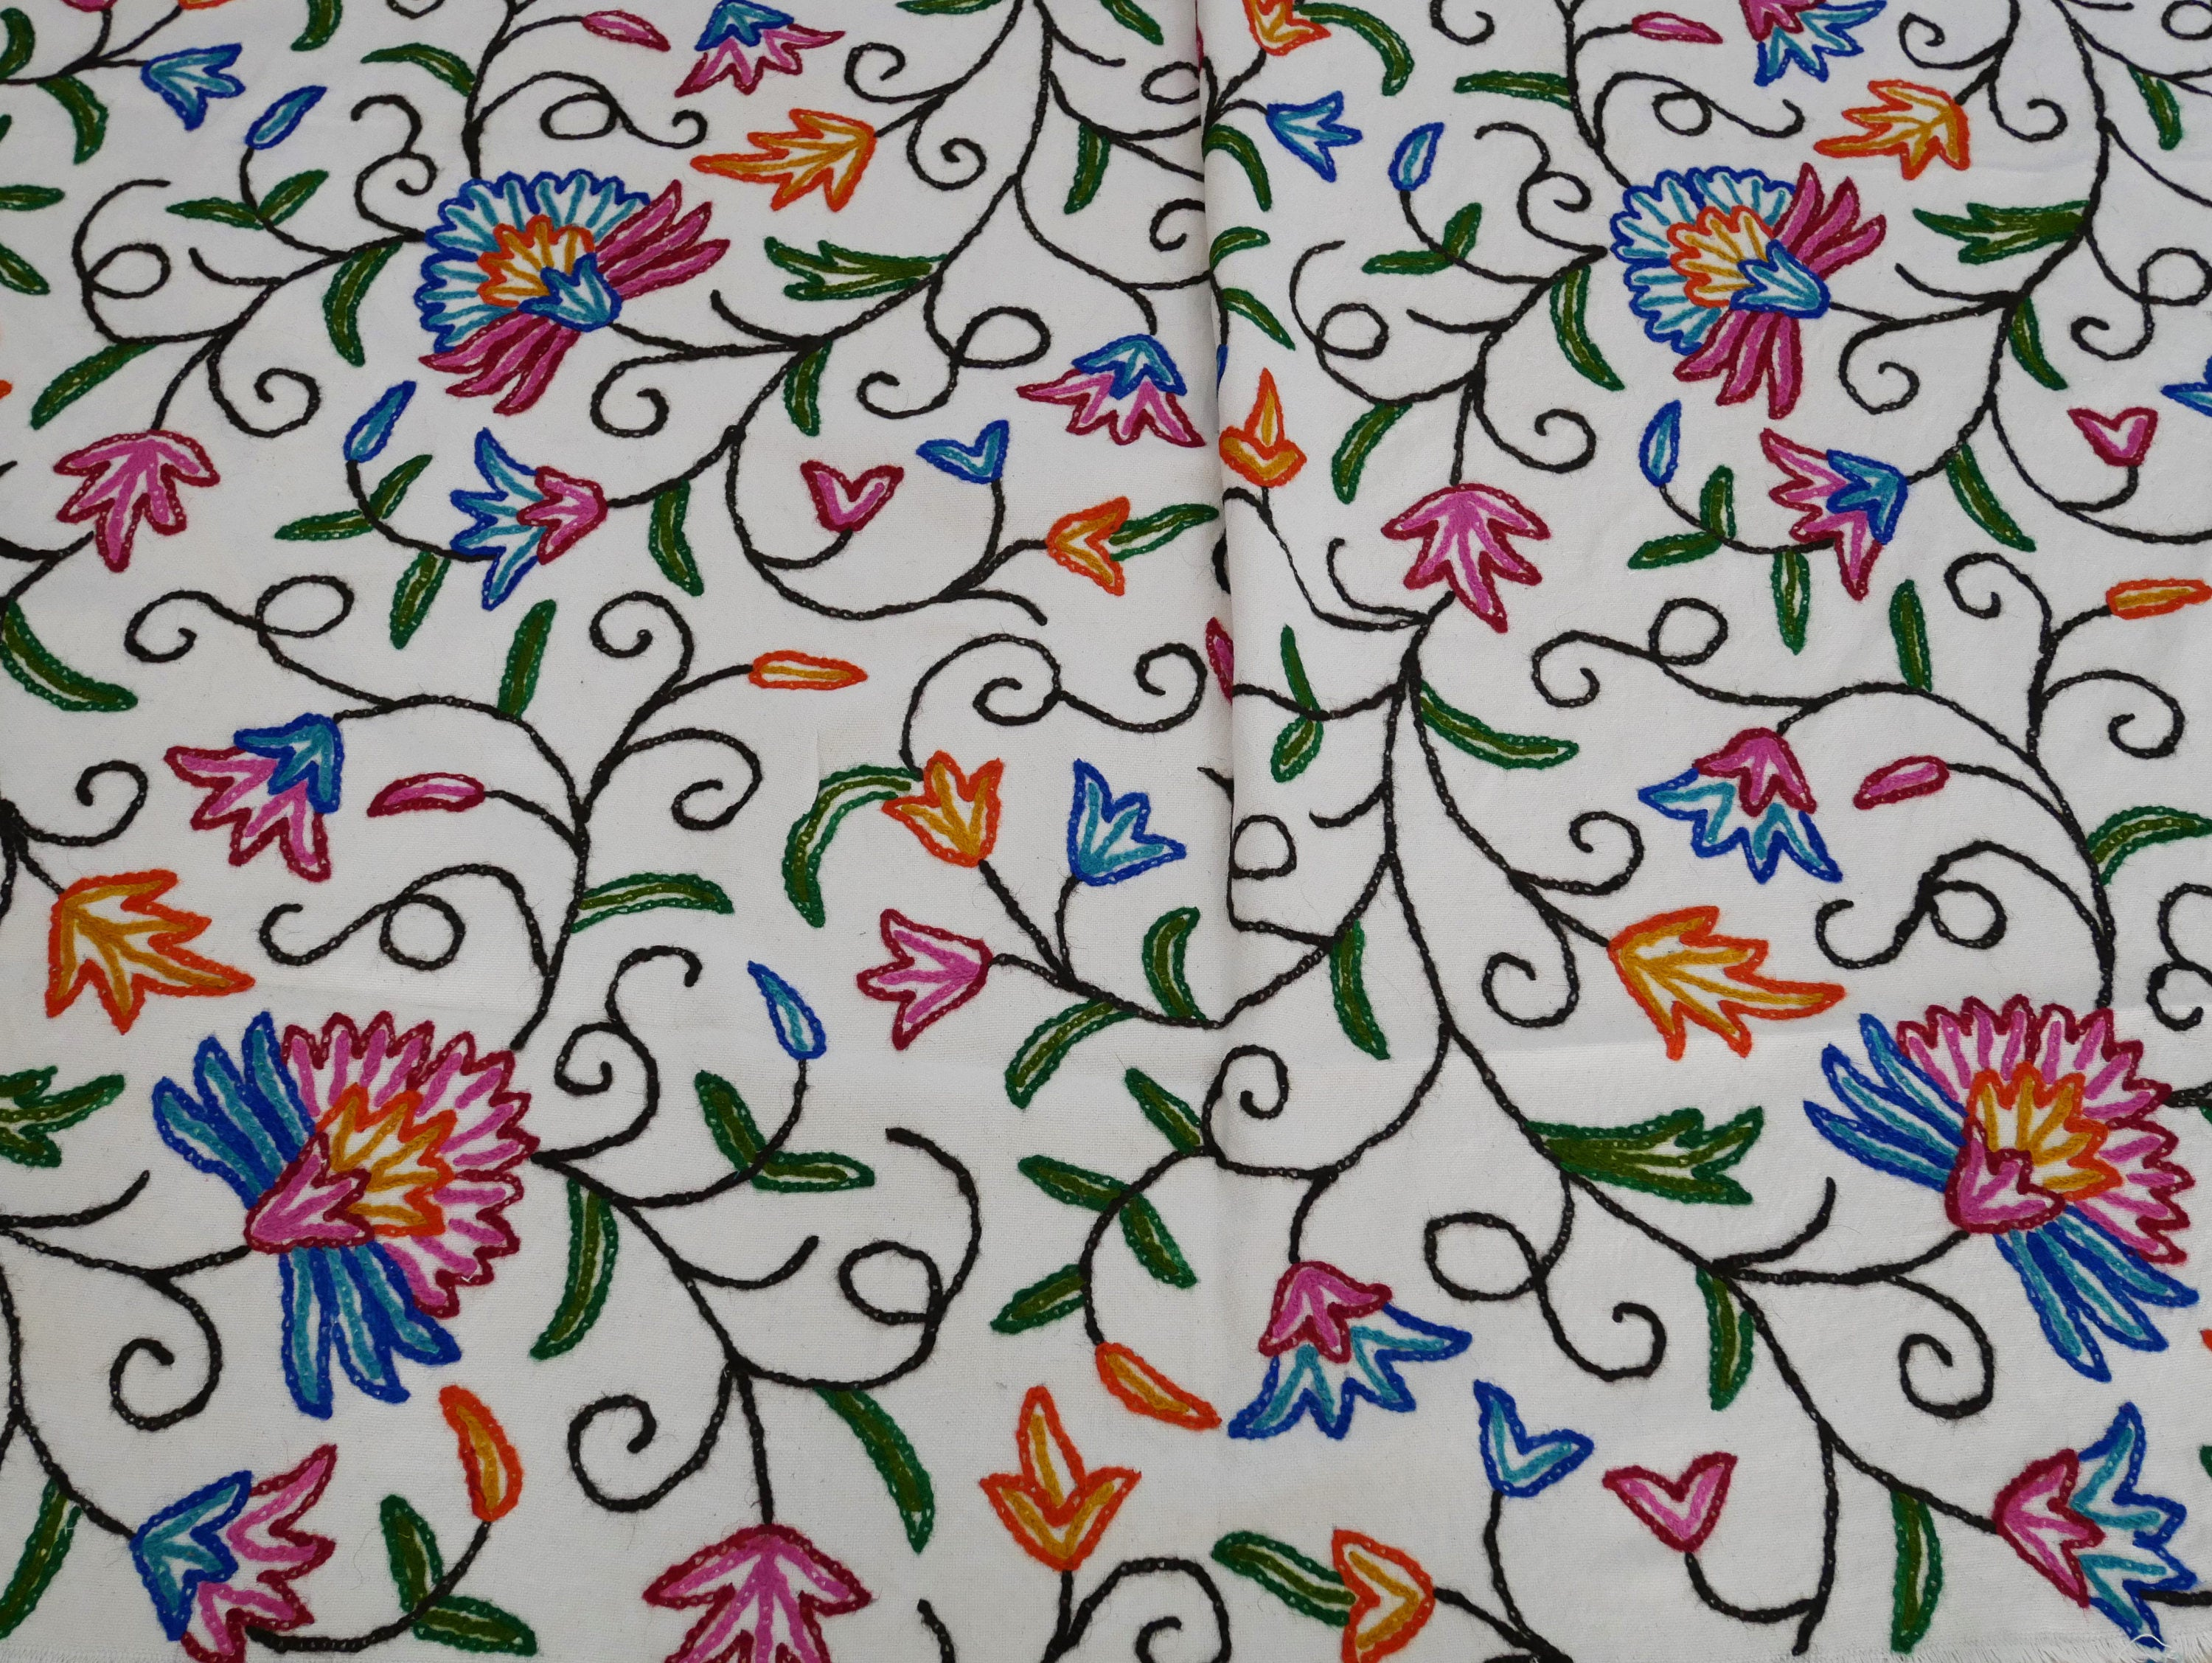 Kashmiri Crewel - fabric by the yard - floral embroidery - curtain fabric bohemian